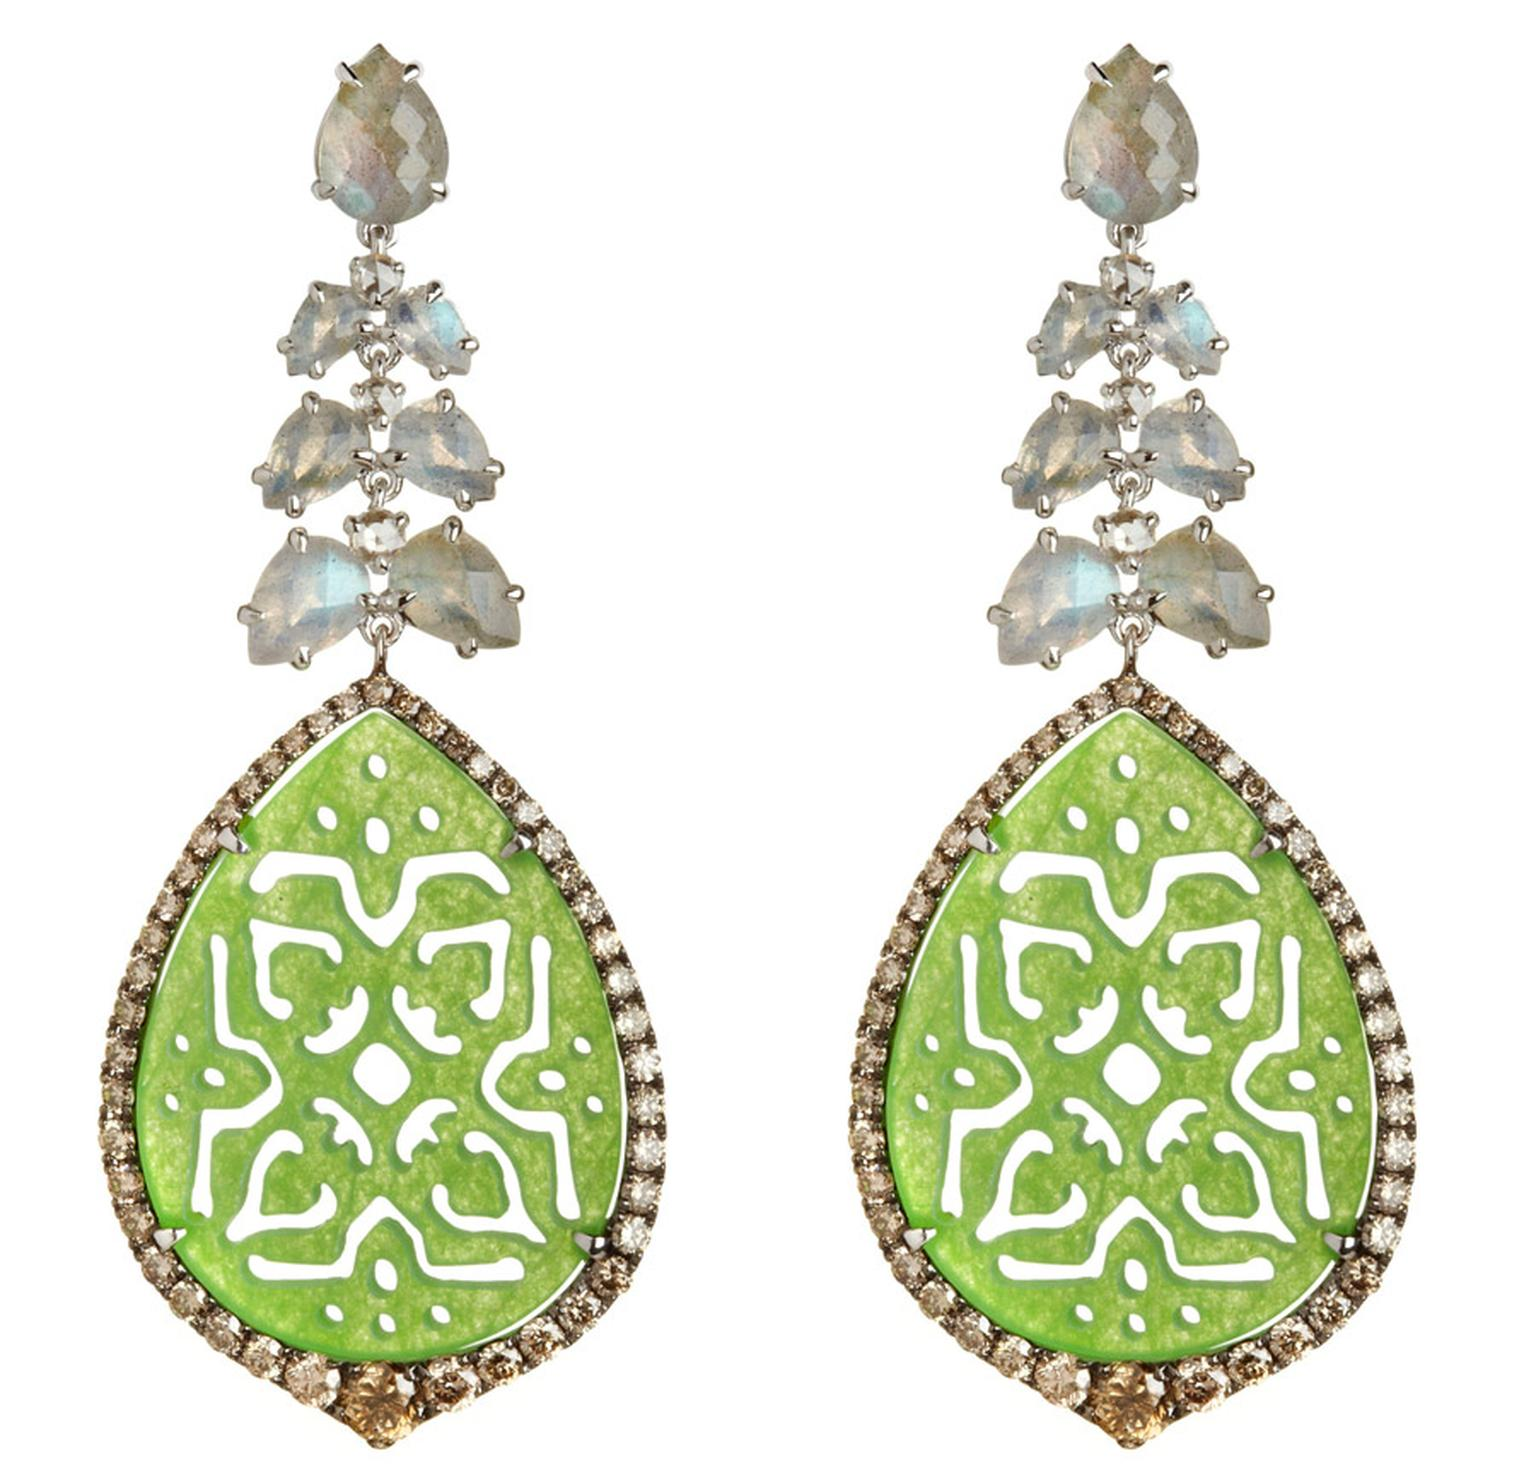 Annoushka-Alhambra-18ct-white-gold-diamond-moonstone-and-Jade-earrings